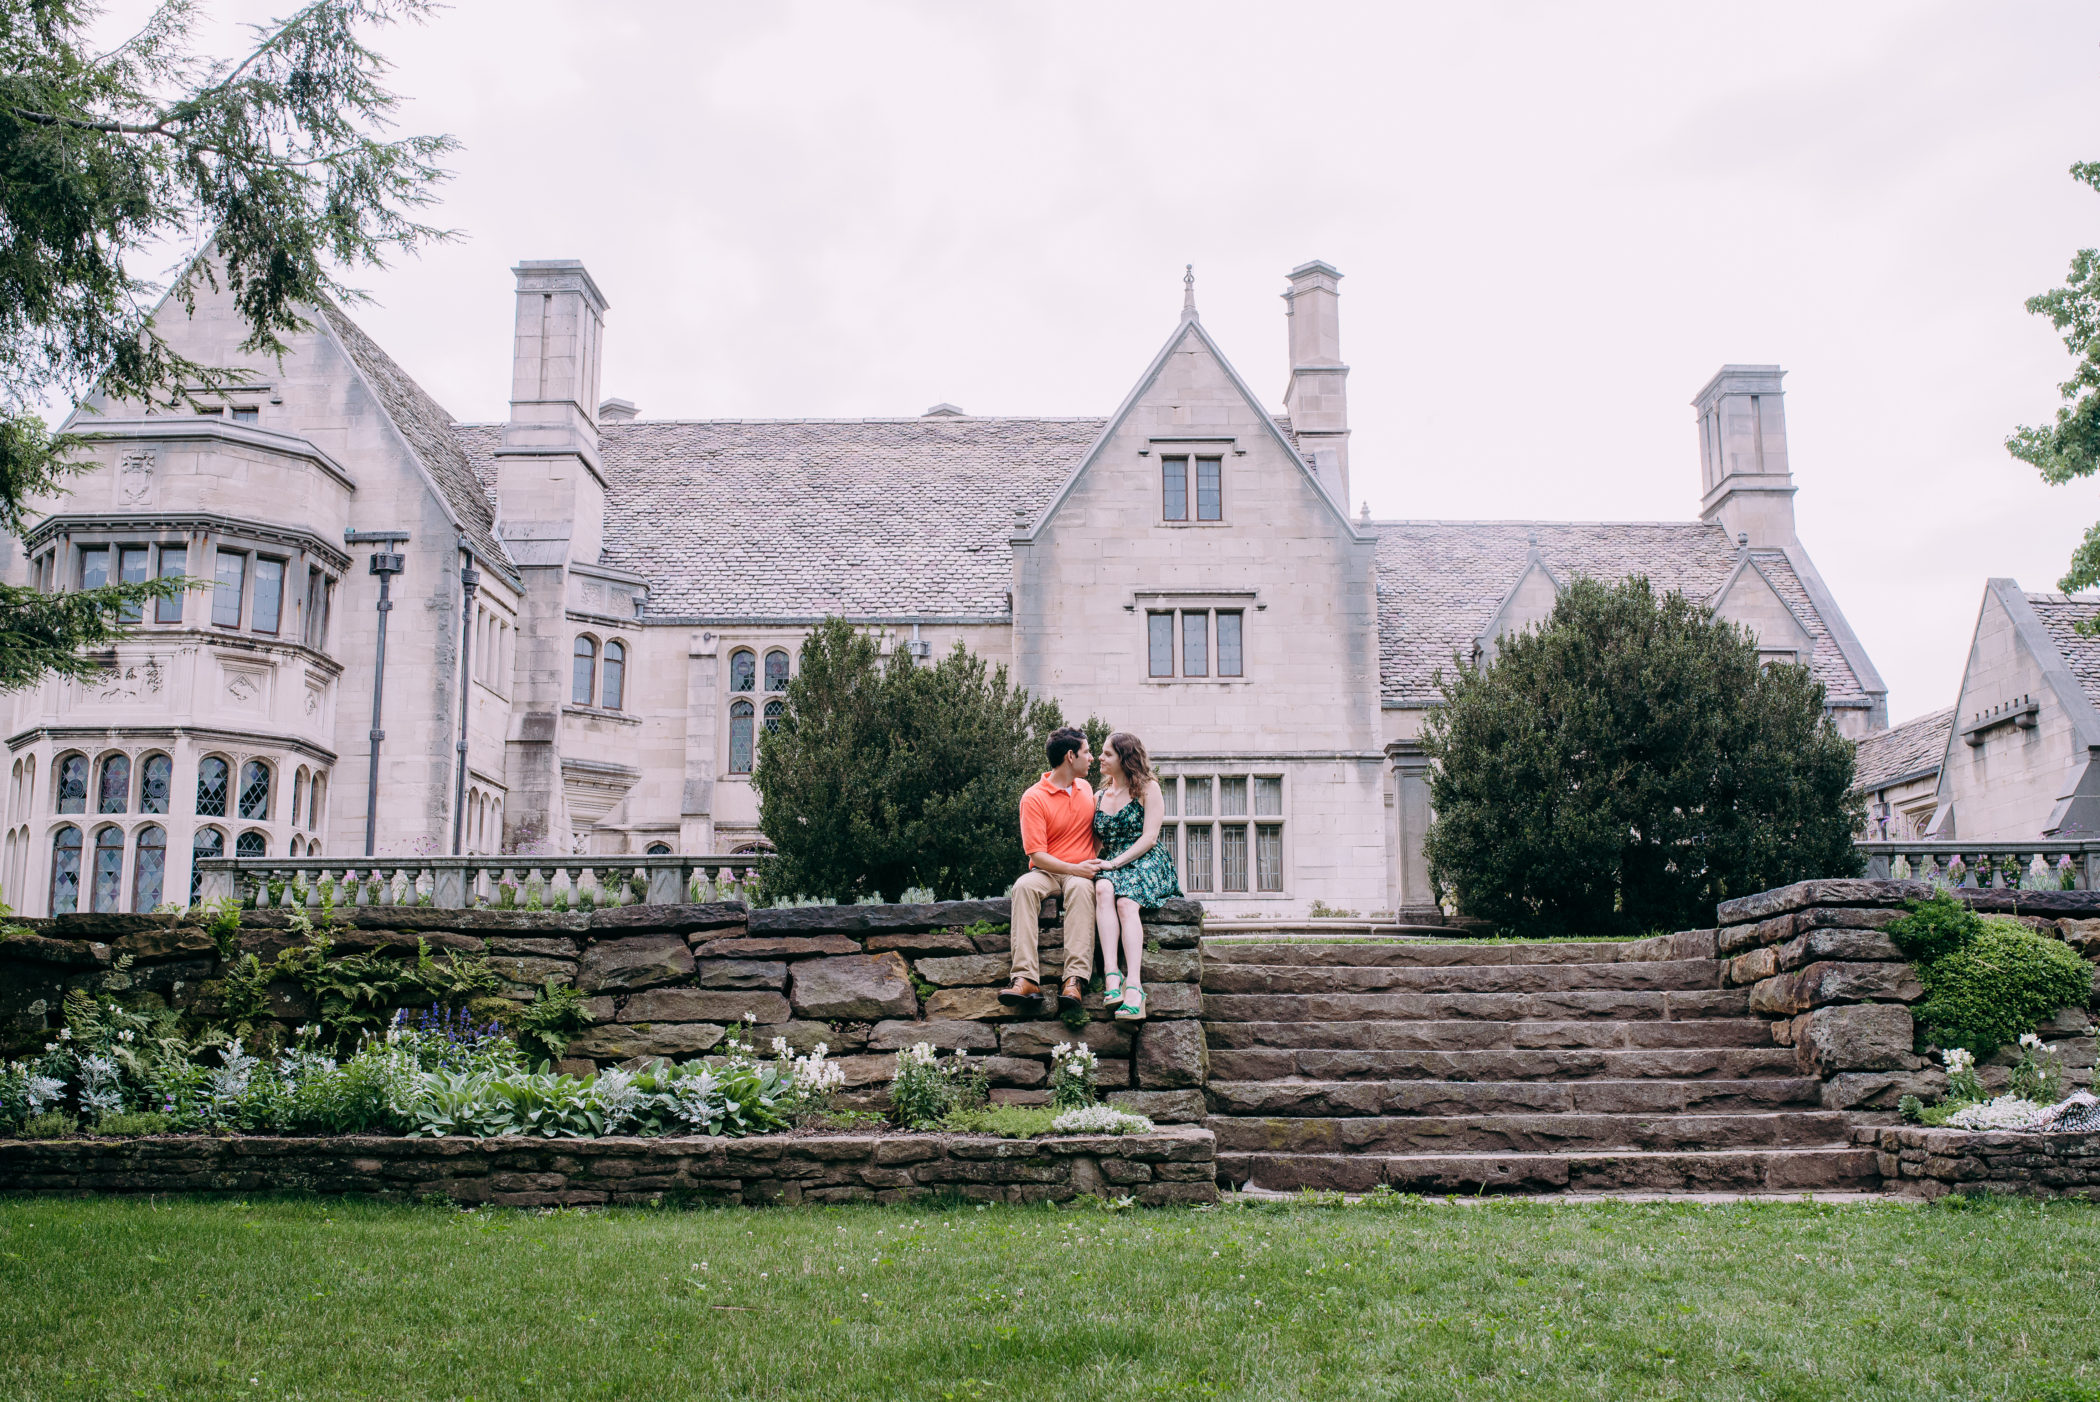 Engagement portrait in front of Hartwood Acres Mansion, near Pittsburgh, PA. Photographed by Laura Mares, a Pittsburgh Photographer.